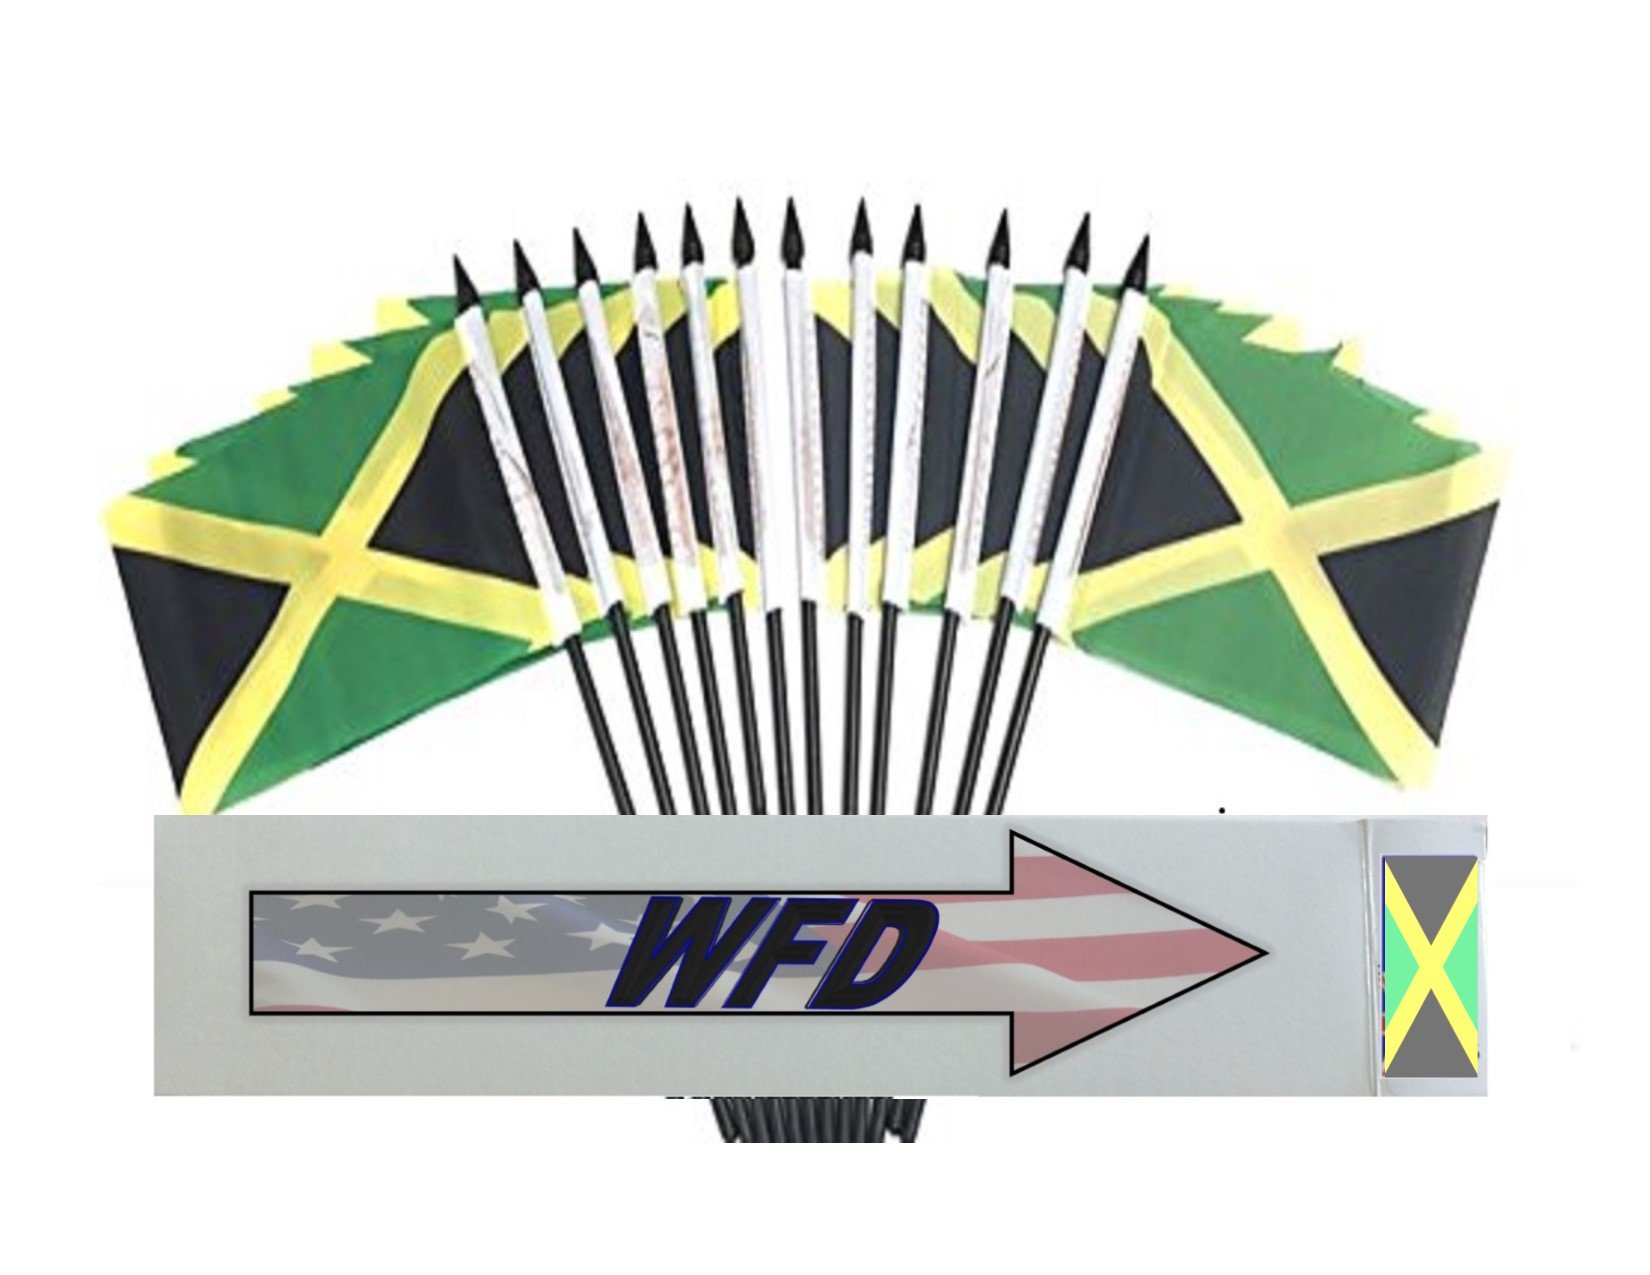 Wholesale Box of 144 4''x6'' Jamaica Polyester Miniature Desk & Little Table Flags, 12 Dozen 4''x 6'' Jamaican Small Mini Handheld Waving Stick Flag by World Flags Direct